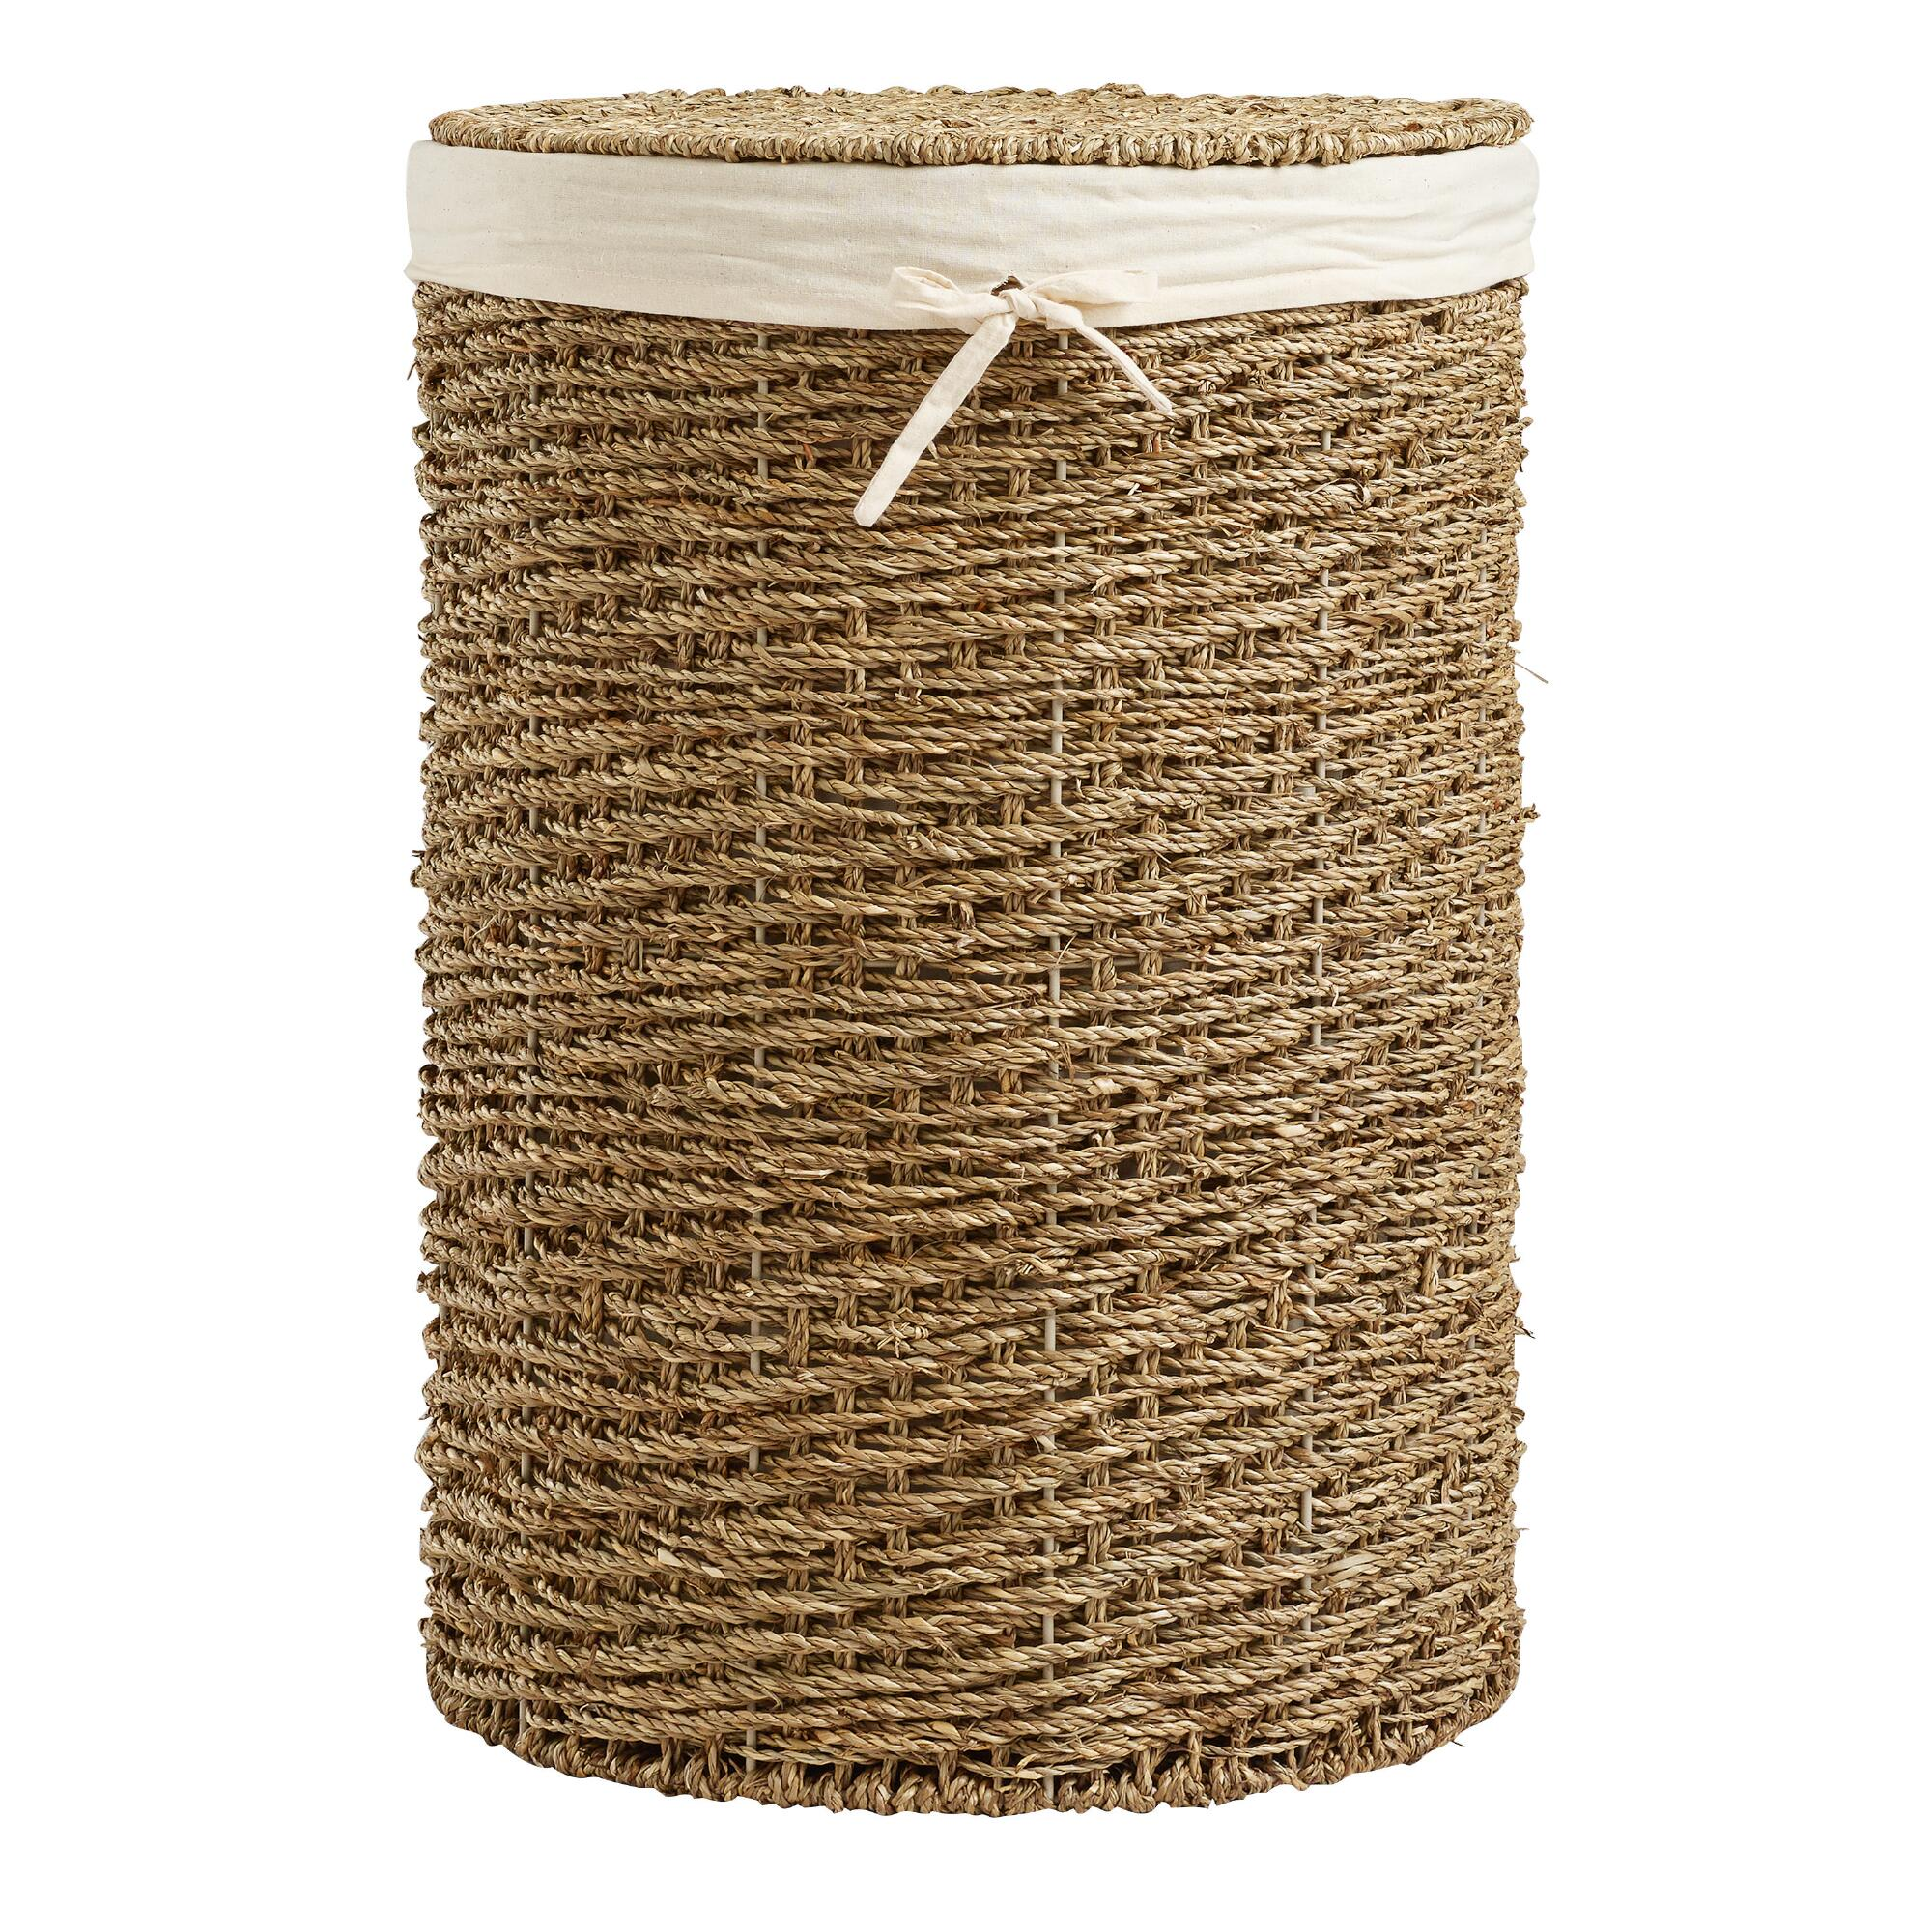 Trista Seagrass Round Hamper: Natural - Natural Fiber by World Market